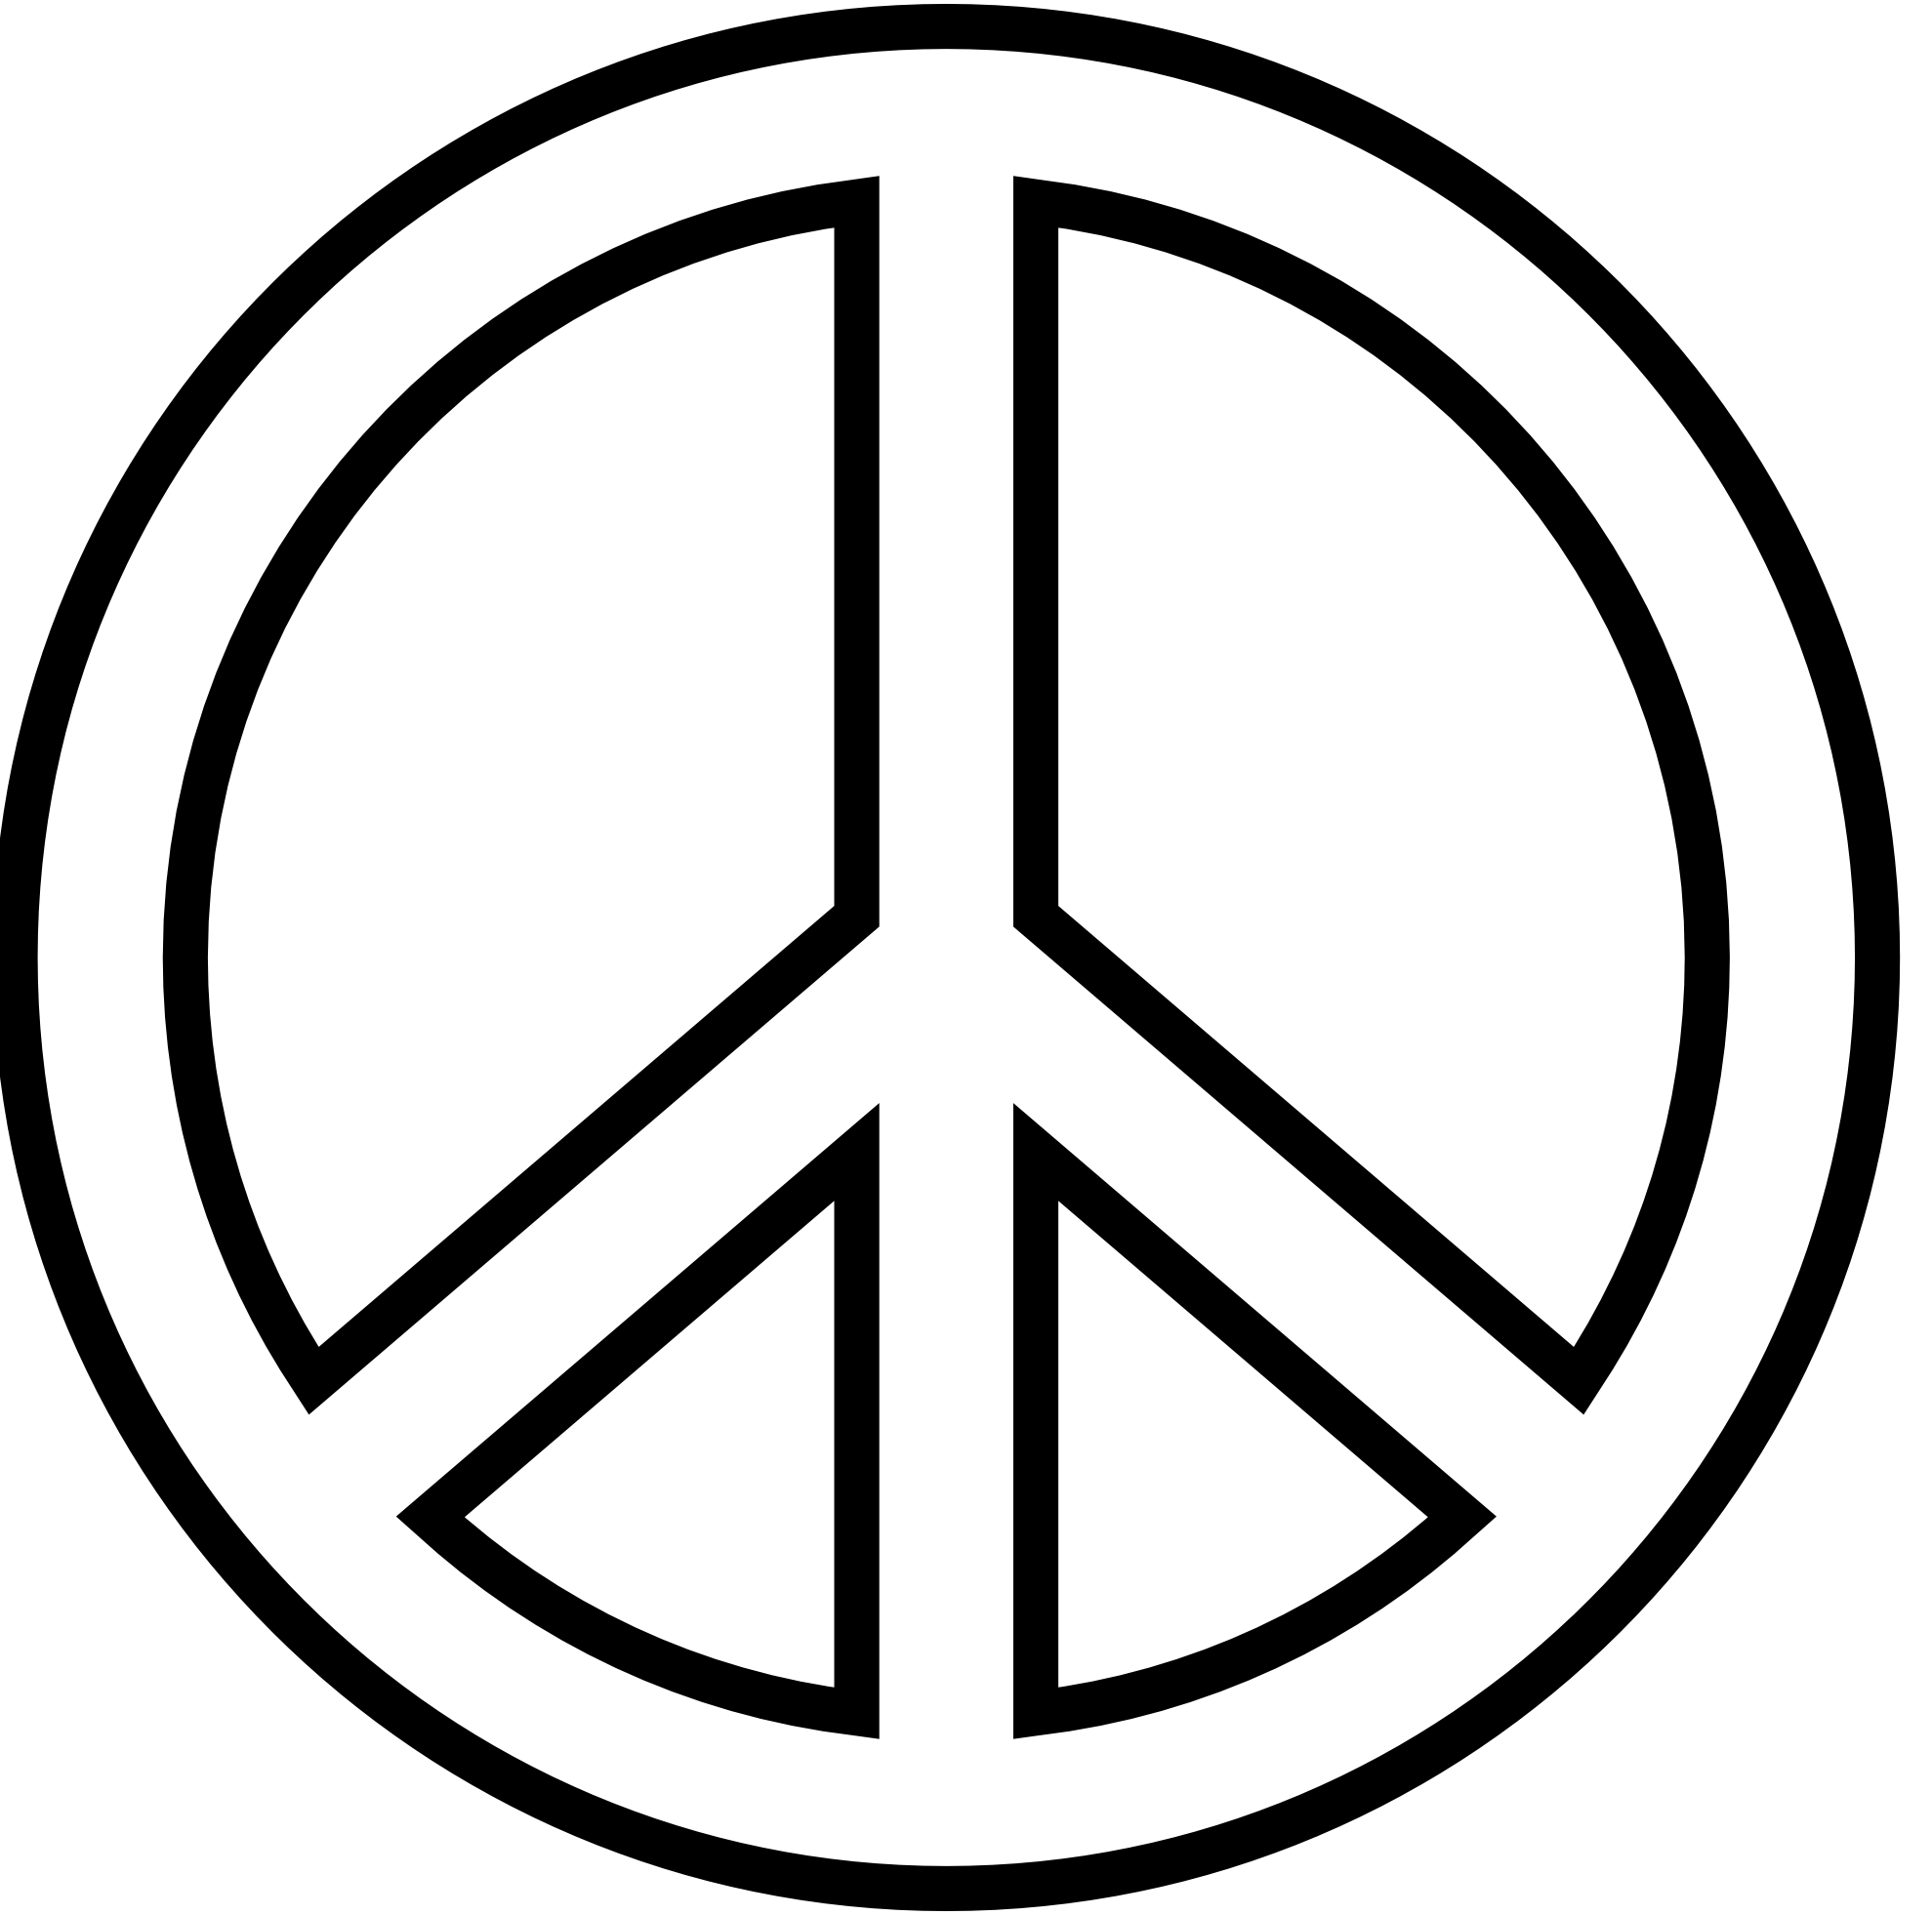 Peace And Serenity Symbols